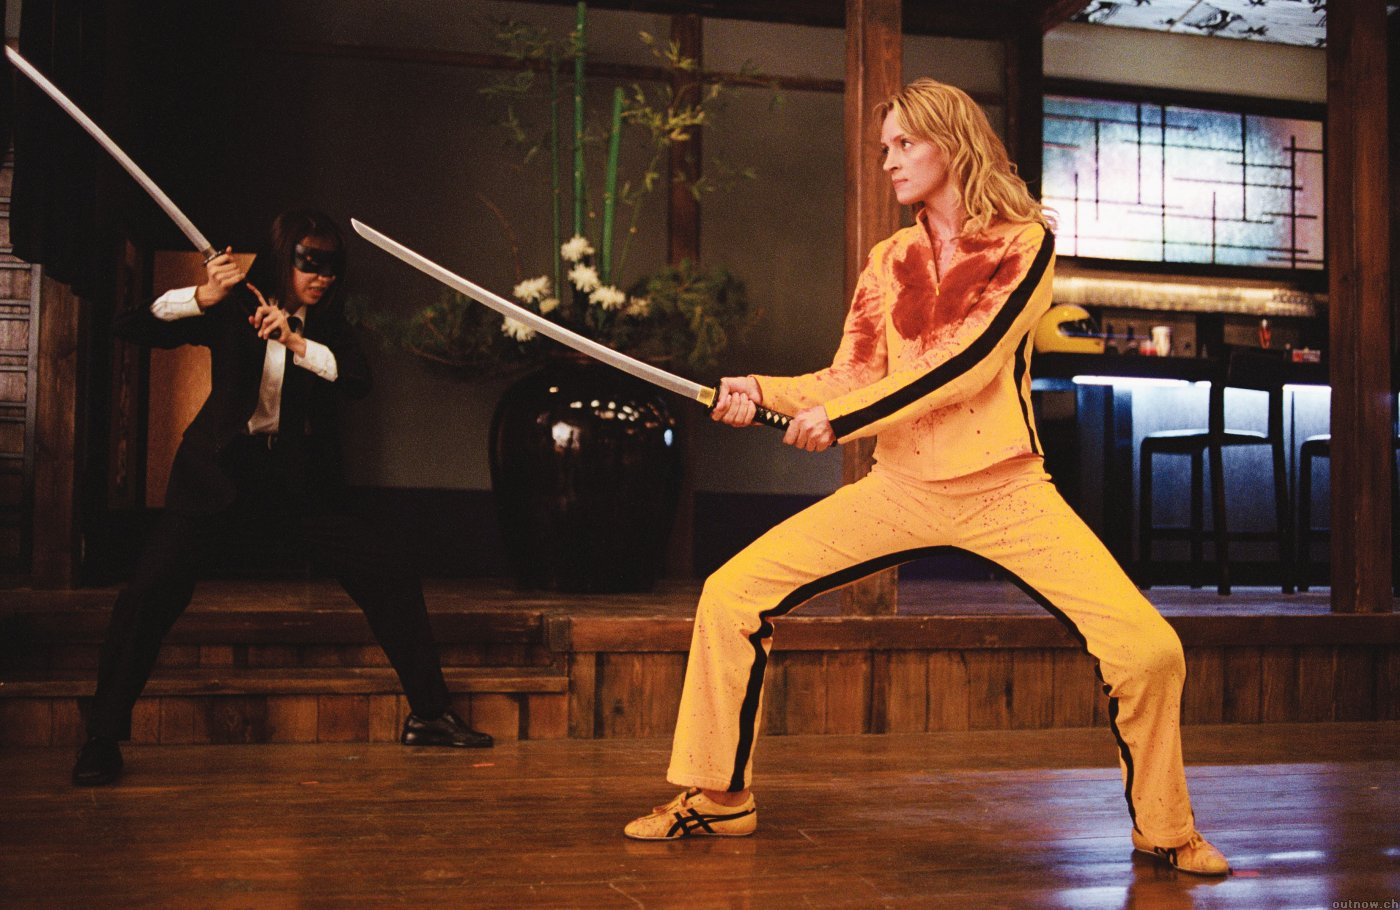 Kill Bill Volume 1 – best action movie